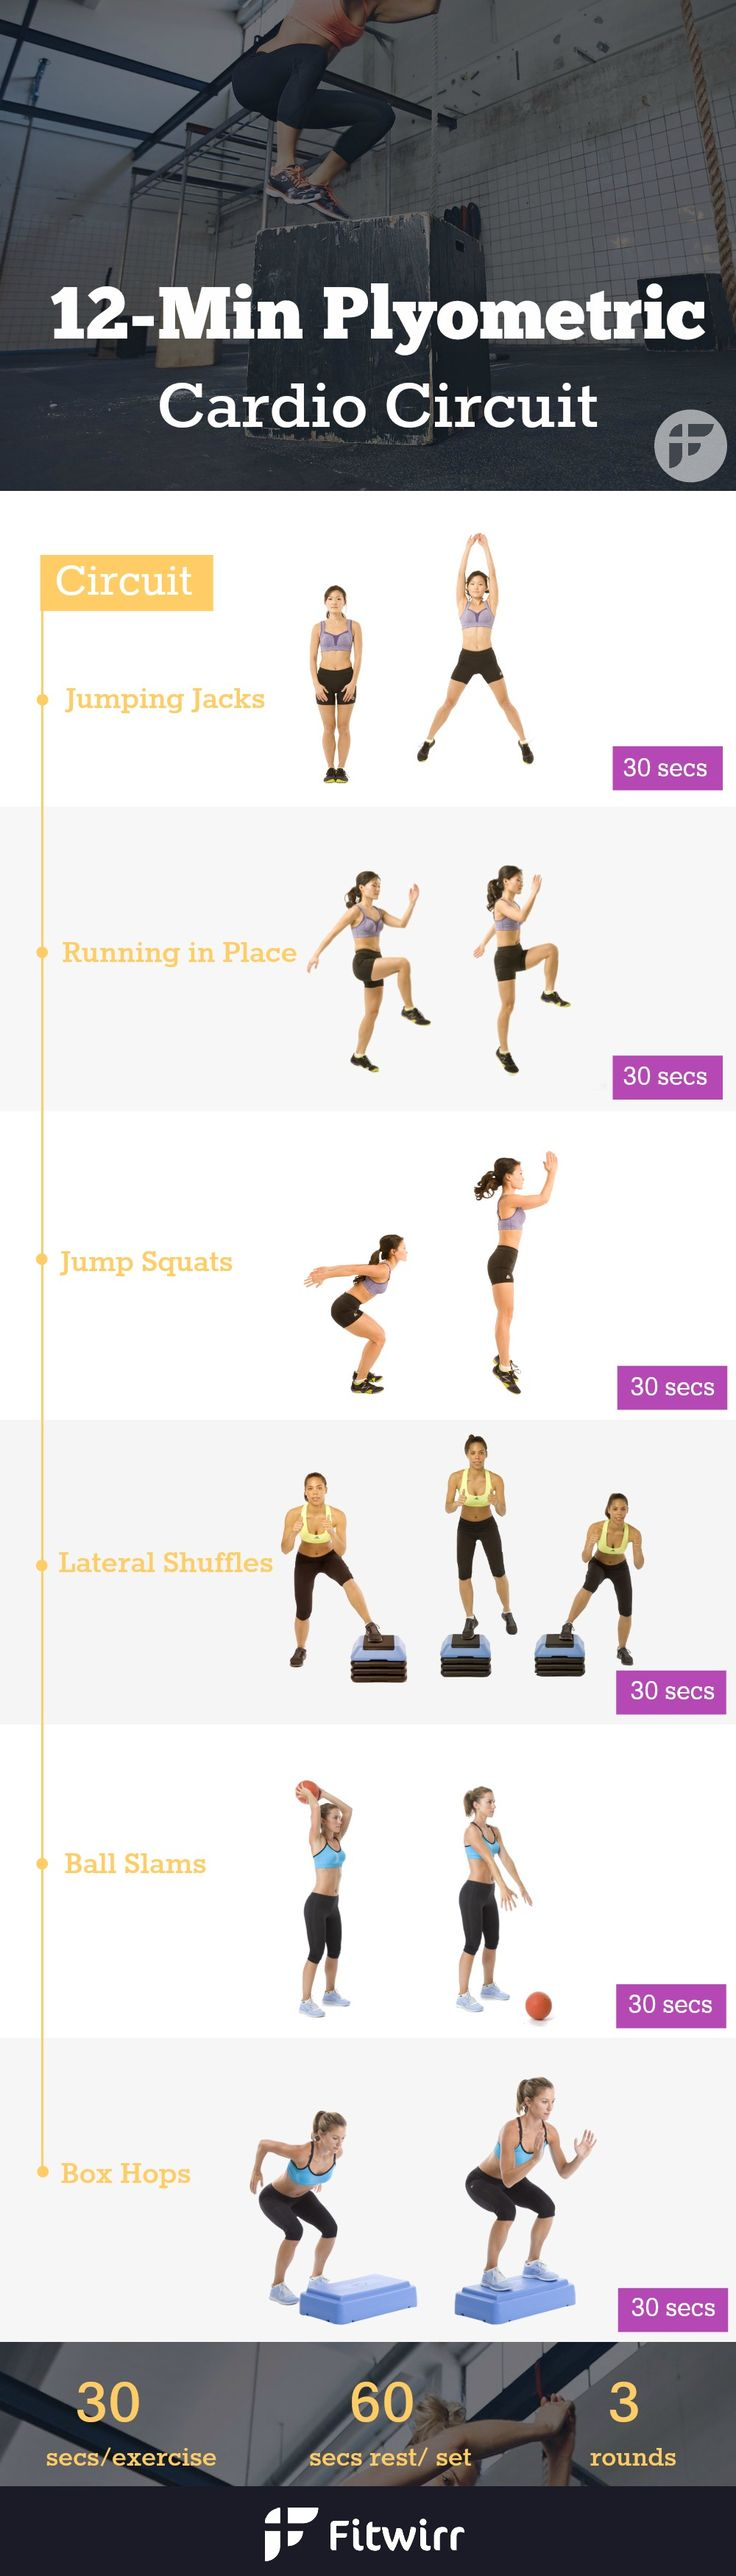 12-Minute Plyometric Cardio Circuit to double your calories burn  and rev up your fat burning hormone.